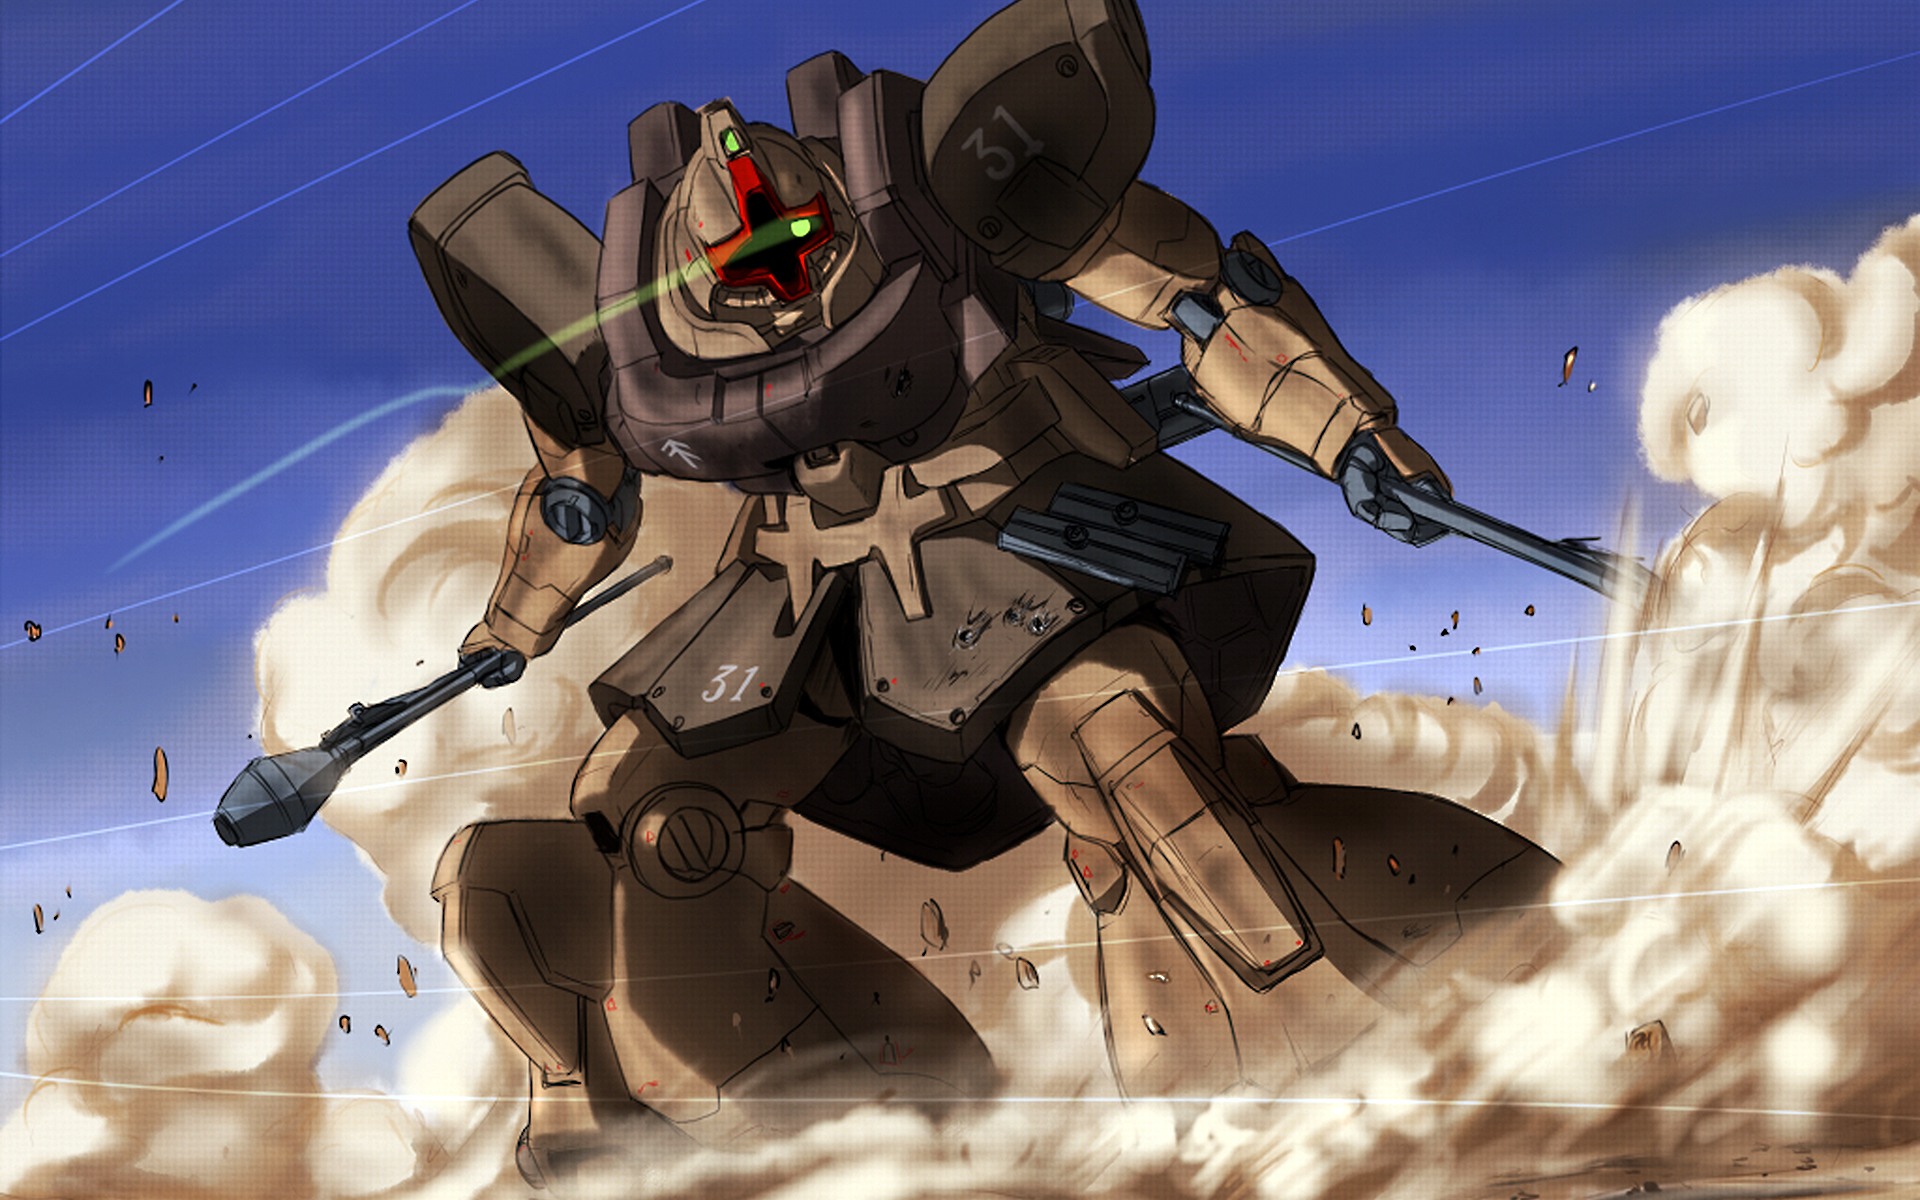 mobile suit gundam Anime HD Wallpaper